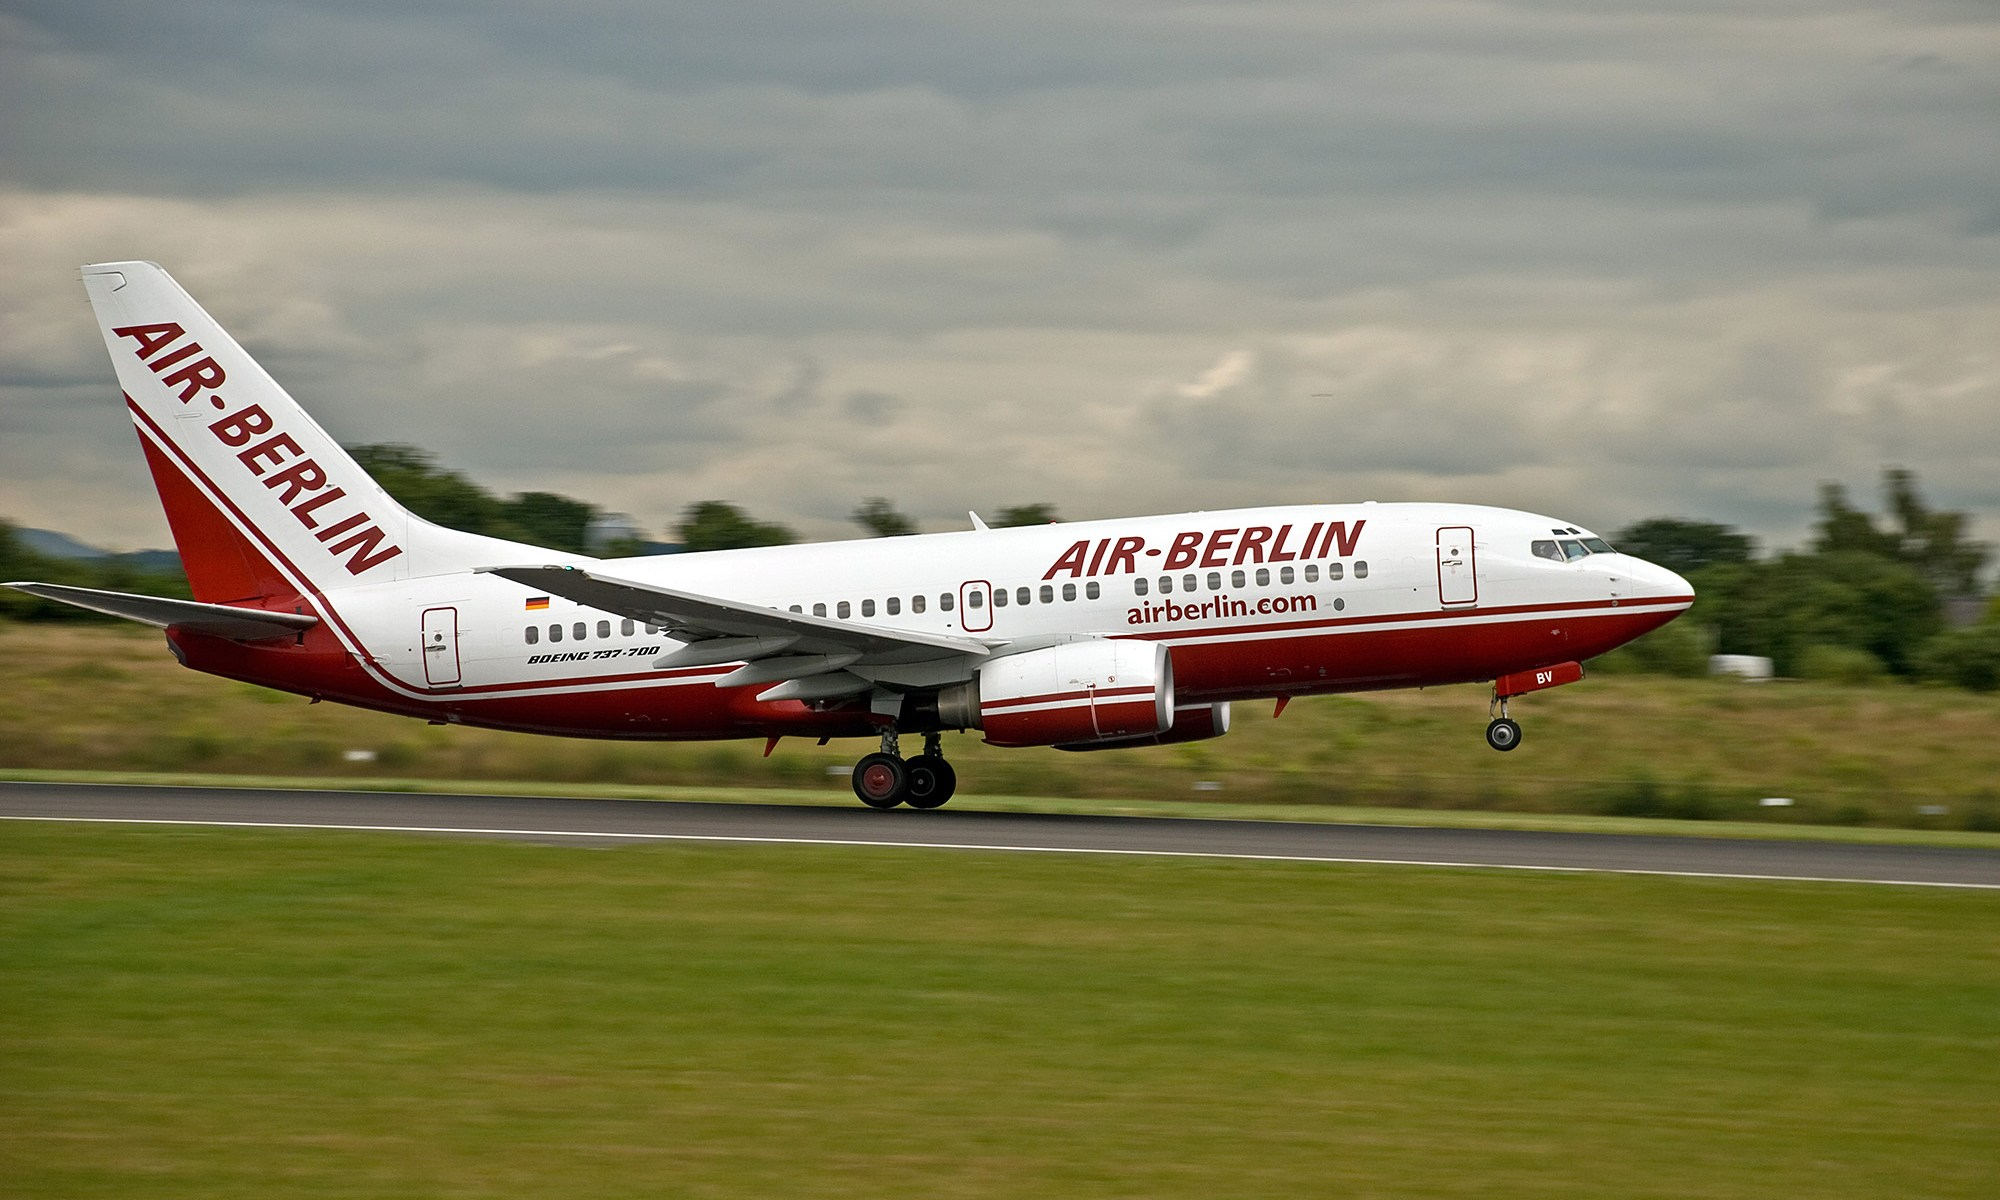 Air Berlin Plane taking off from Manchester